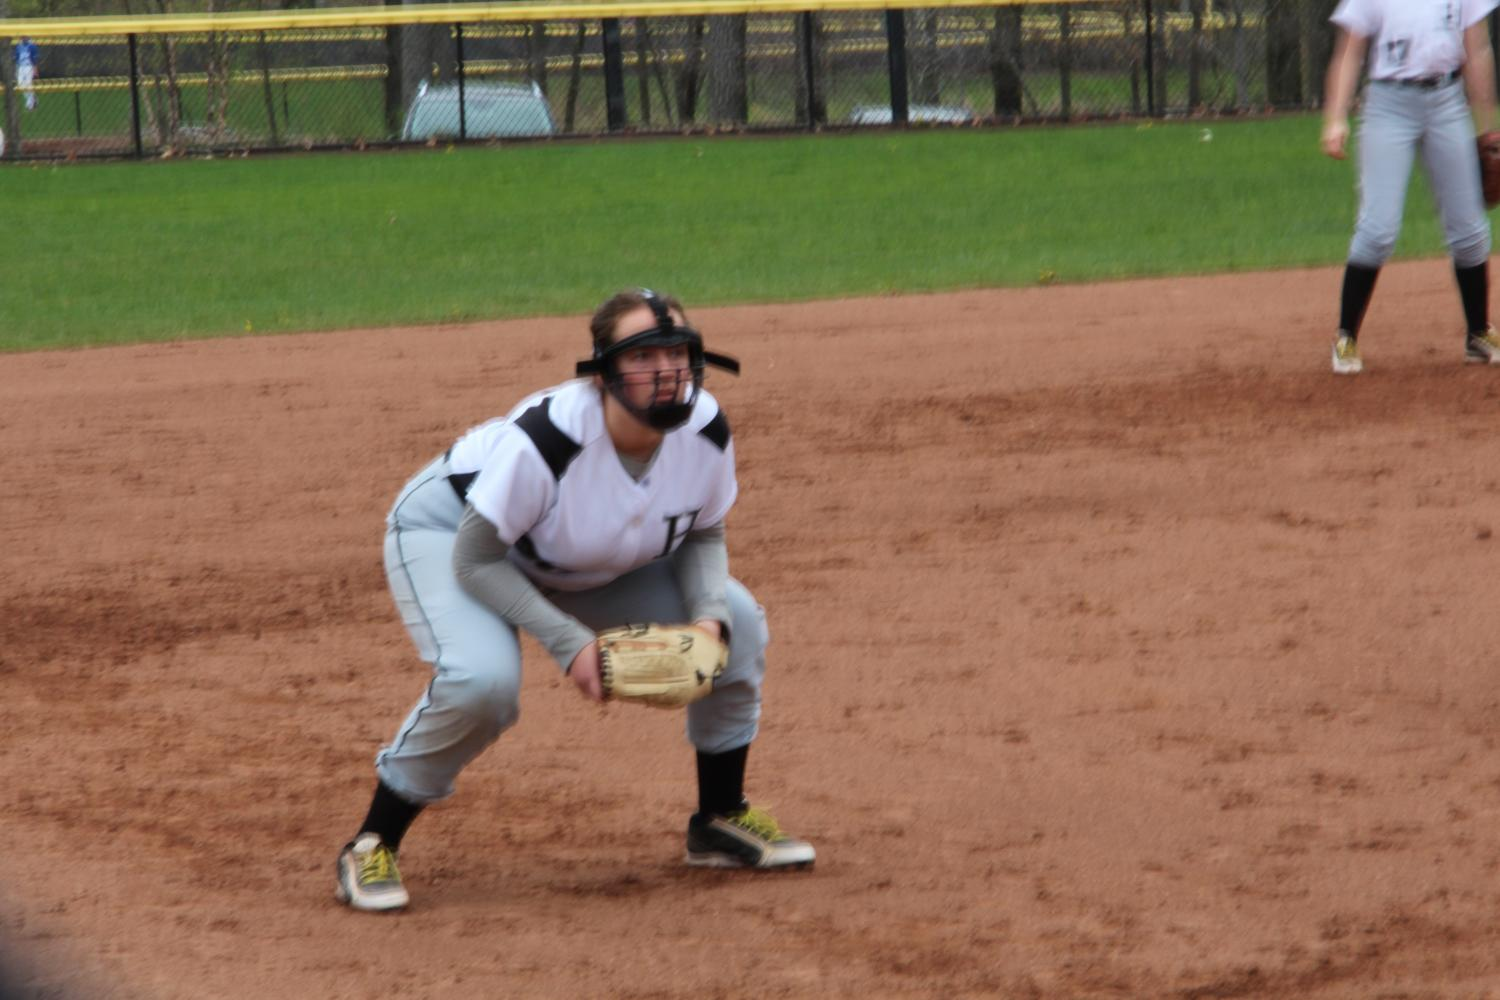 Lauren Ahern squats down in preperation to field a ball.